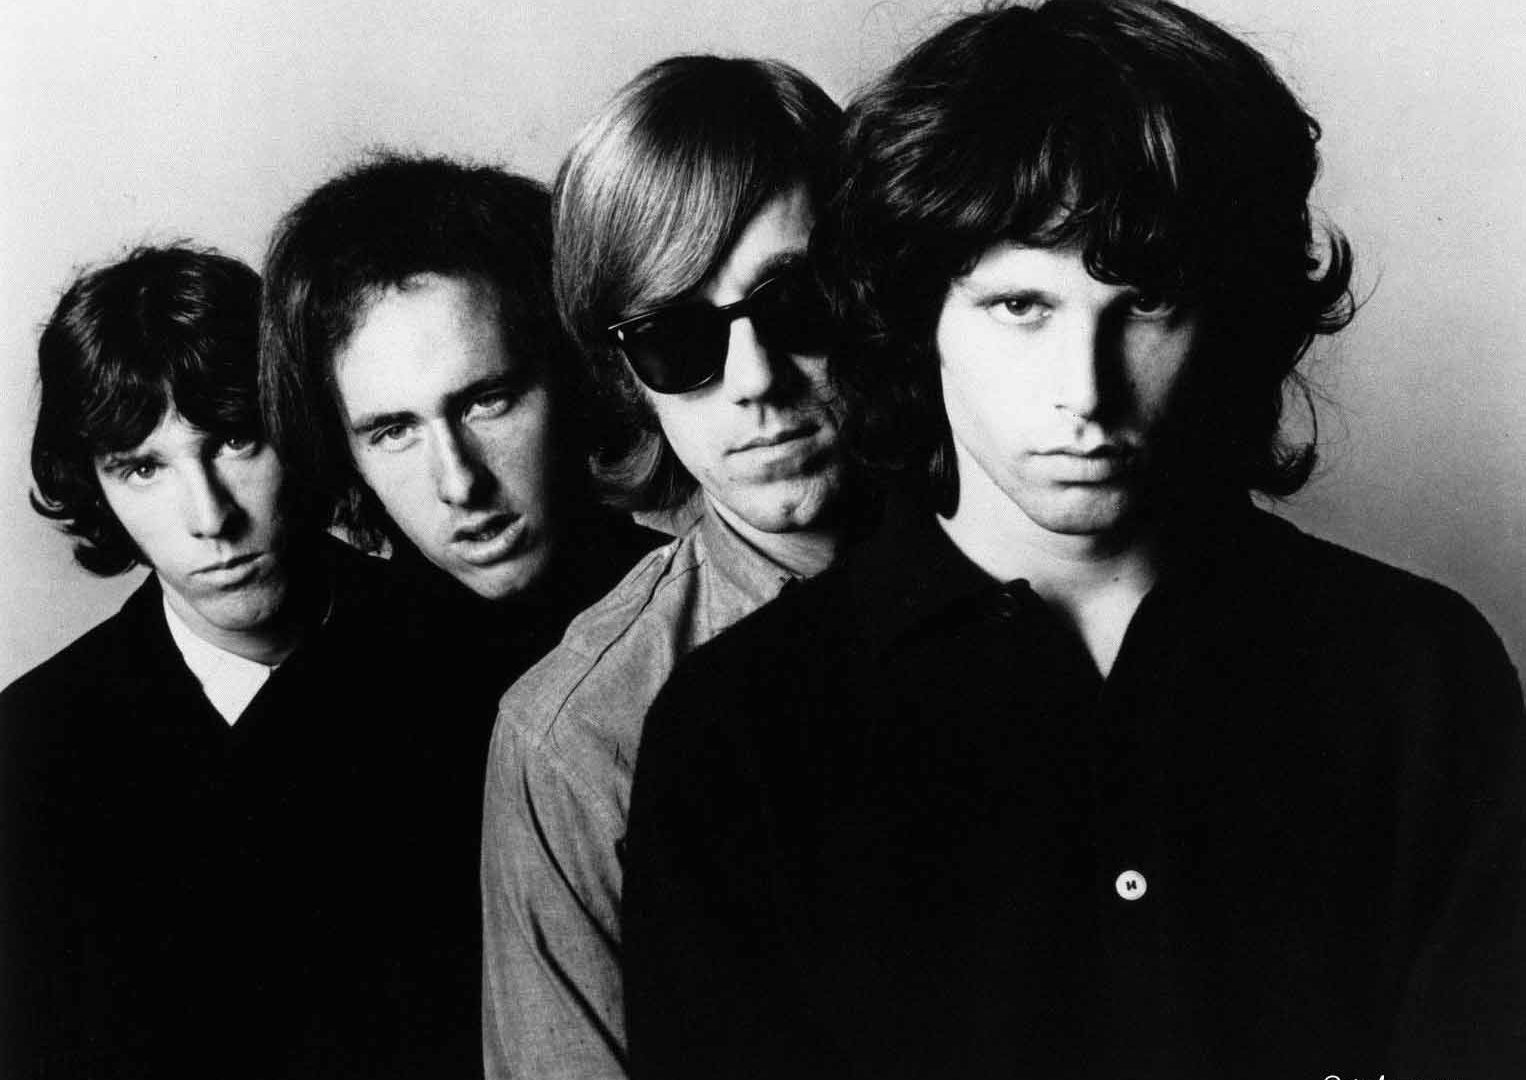 Greatest rock band ever-The Doors